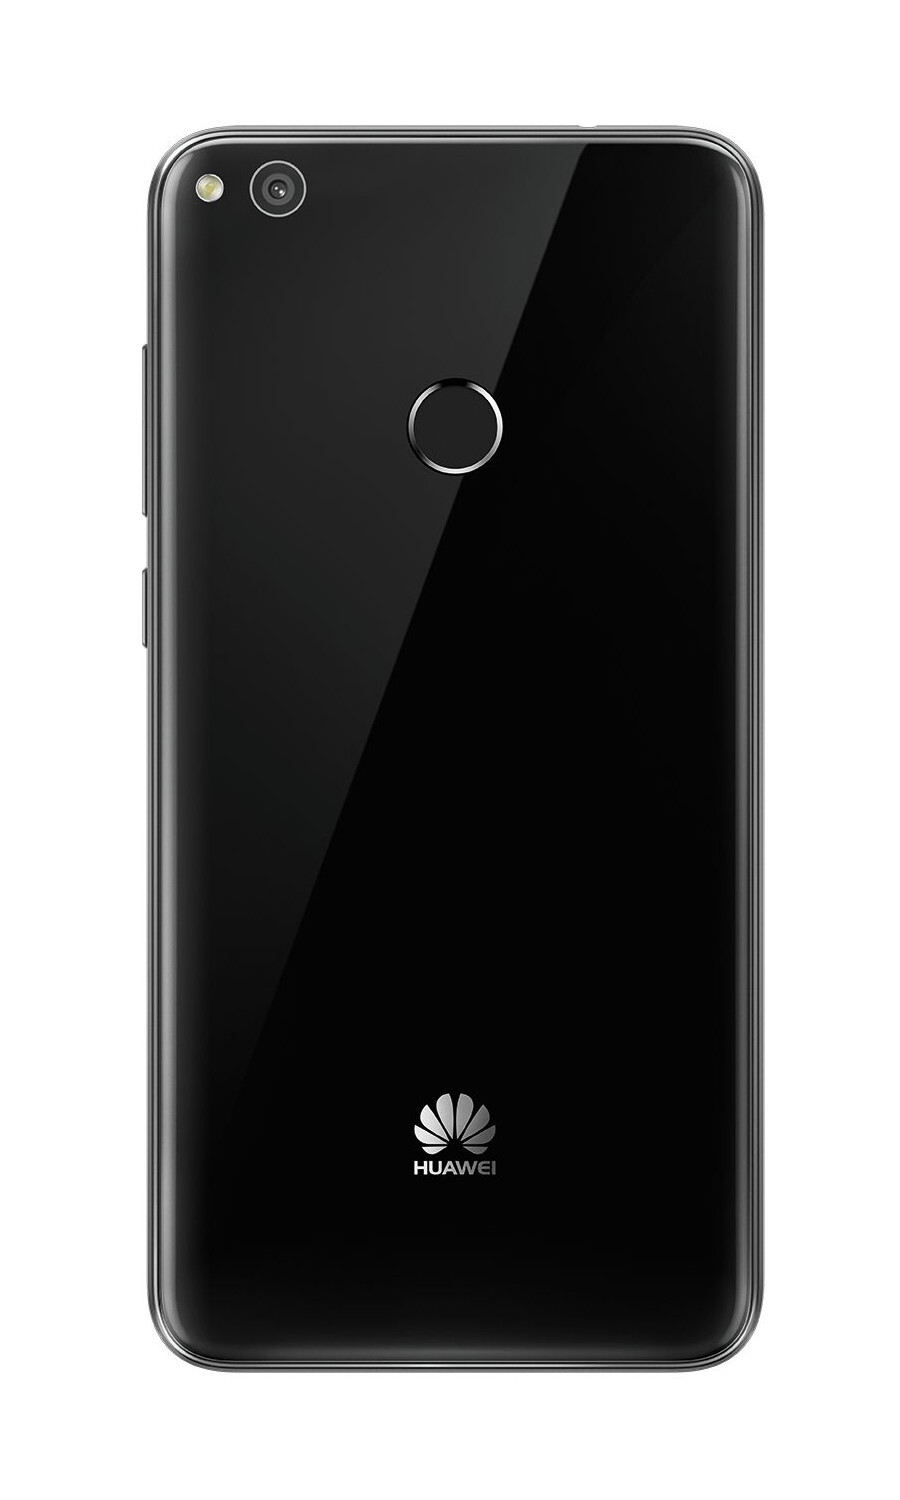 huawei p8 lite 2017 coming to the uk on february 1 priced to sell at 185. Black Bedroom Furniture Sets. Home Design Ideas